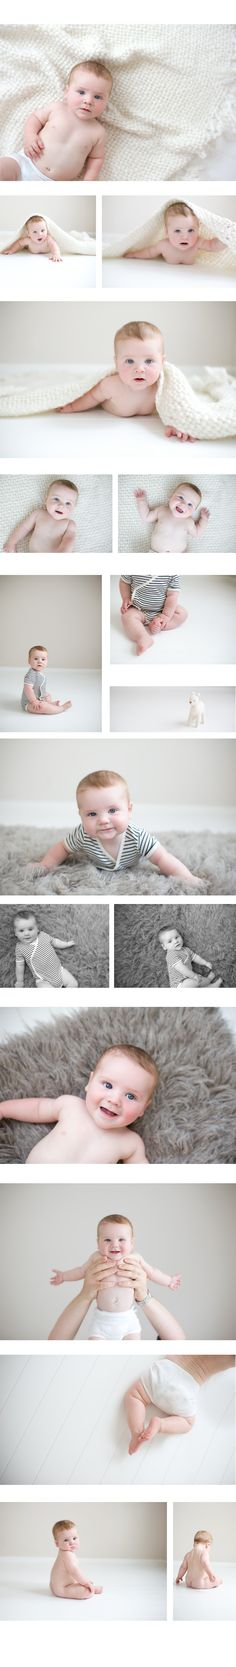 Photos of my son by the awesome Lane Proffitt Photography! (on her blog)